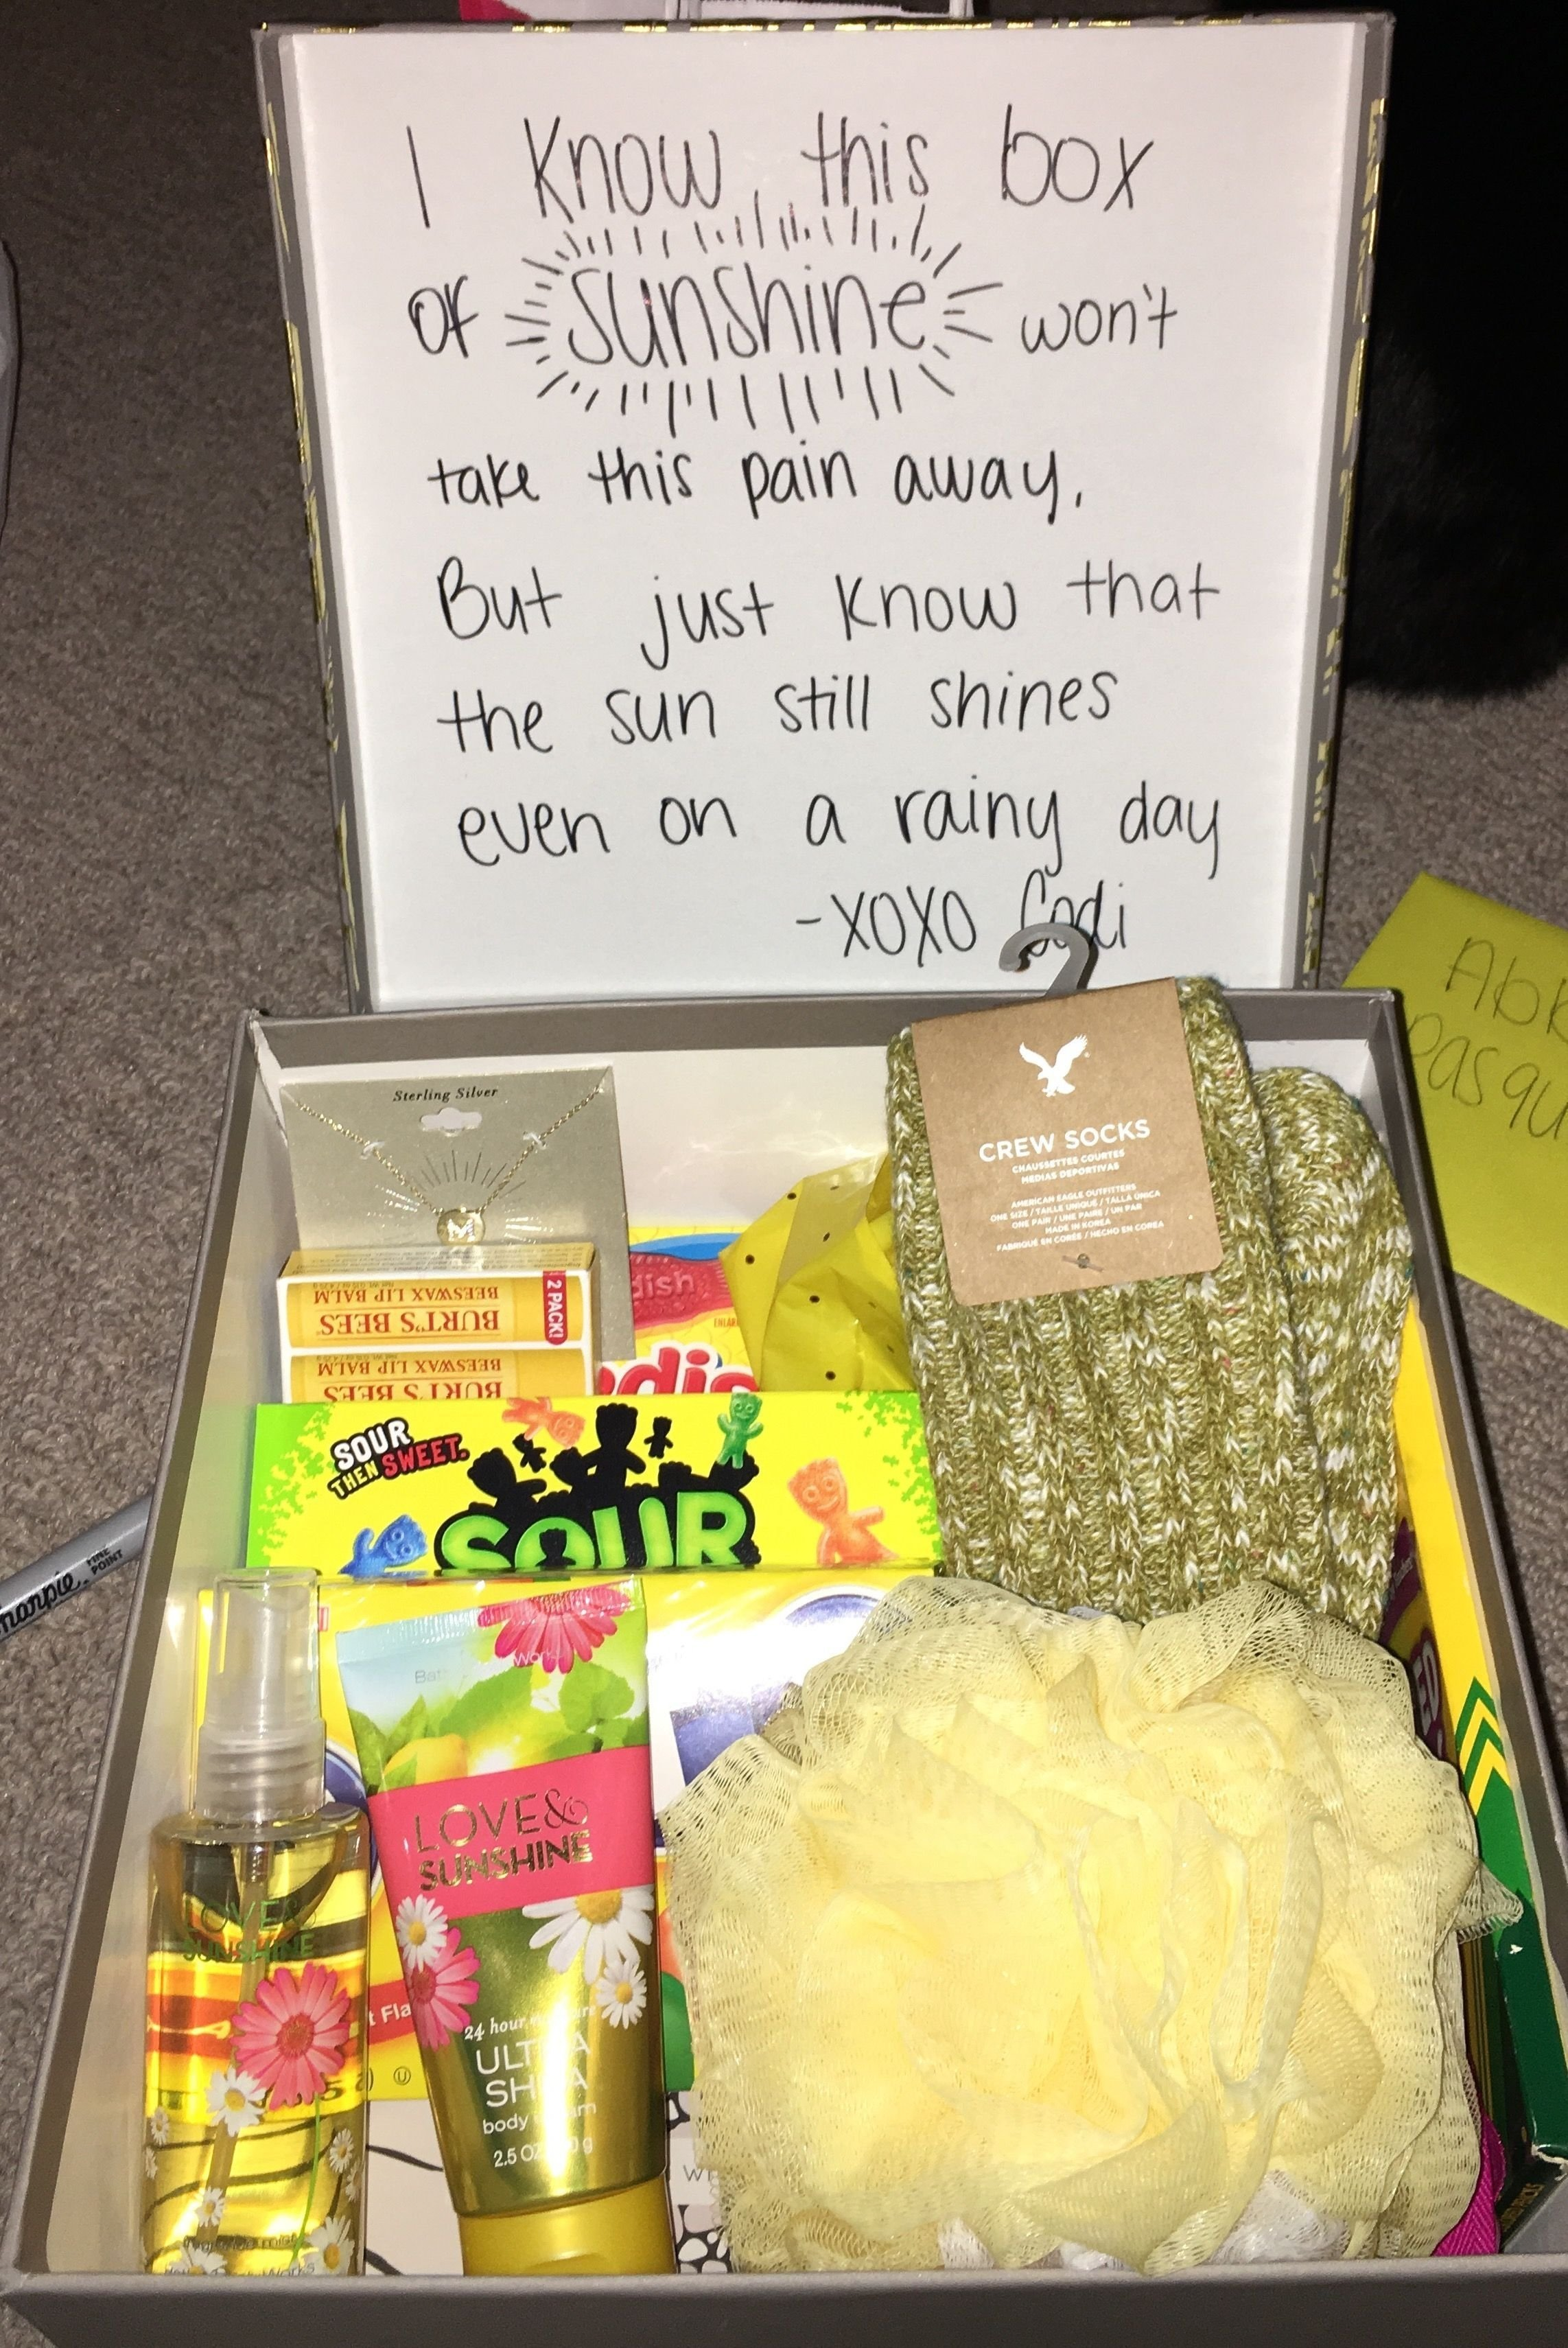 10 Most Popular Birthday Present Ideas For Sister care package for grieving friend good idea pinterest gift 16 2021